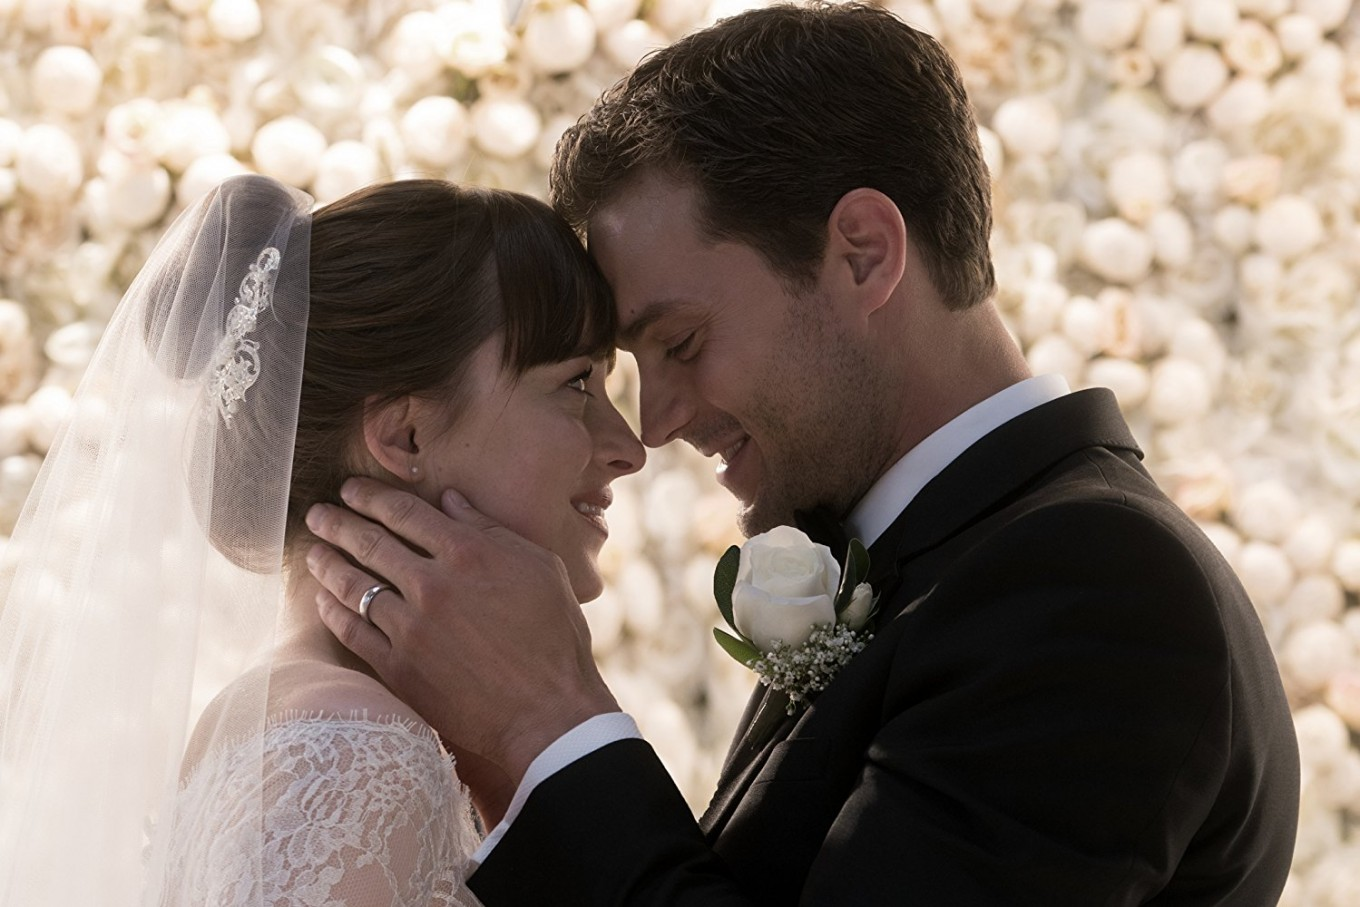 'Fifty Shades' finale steams up North American box offices